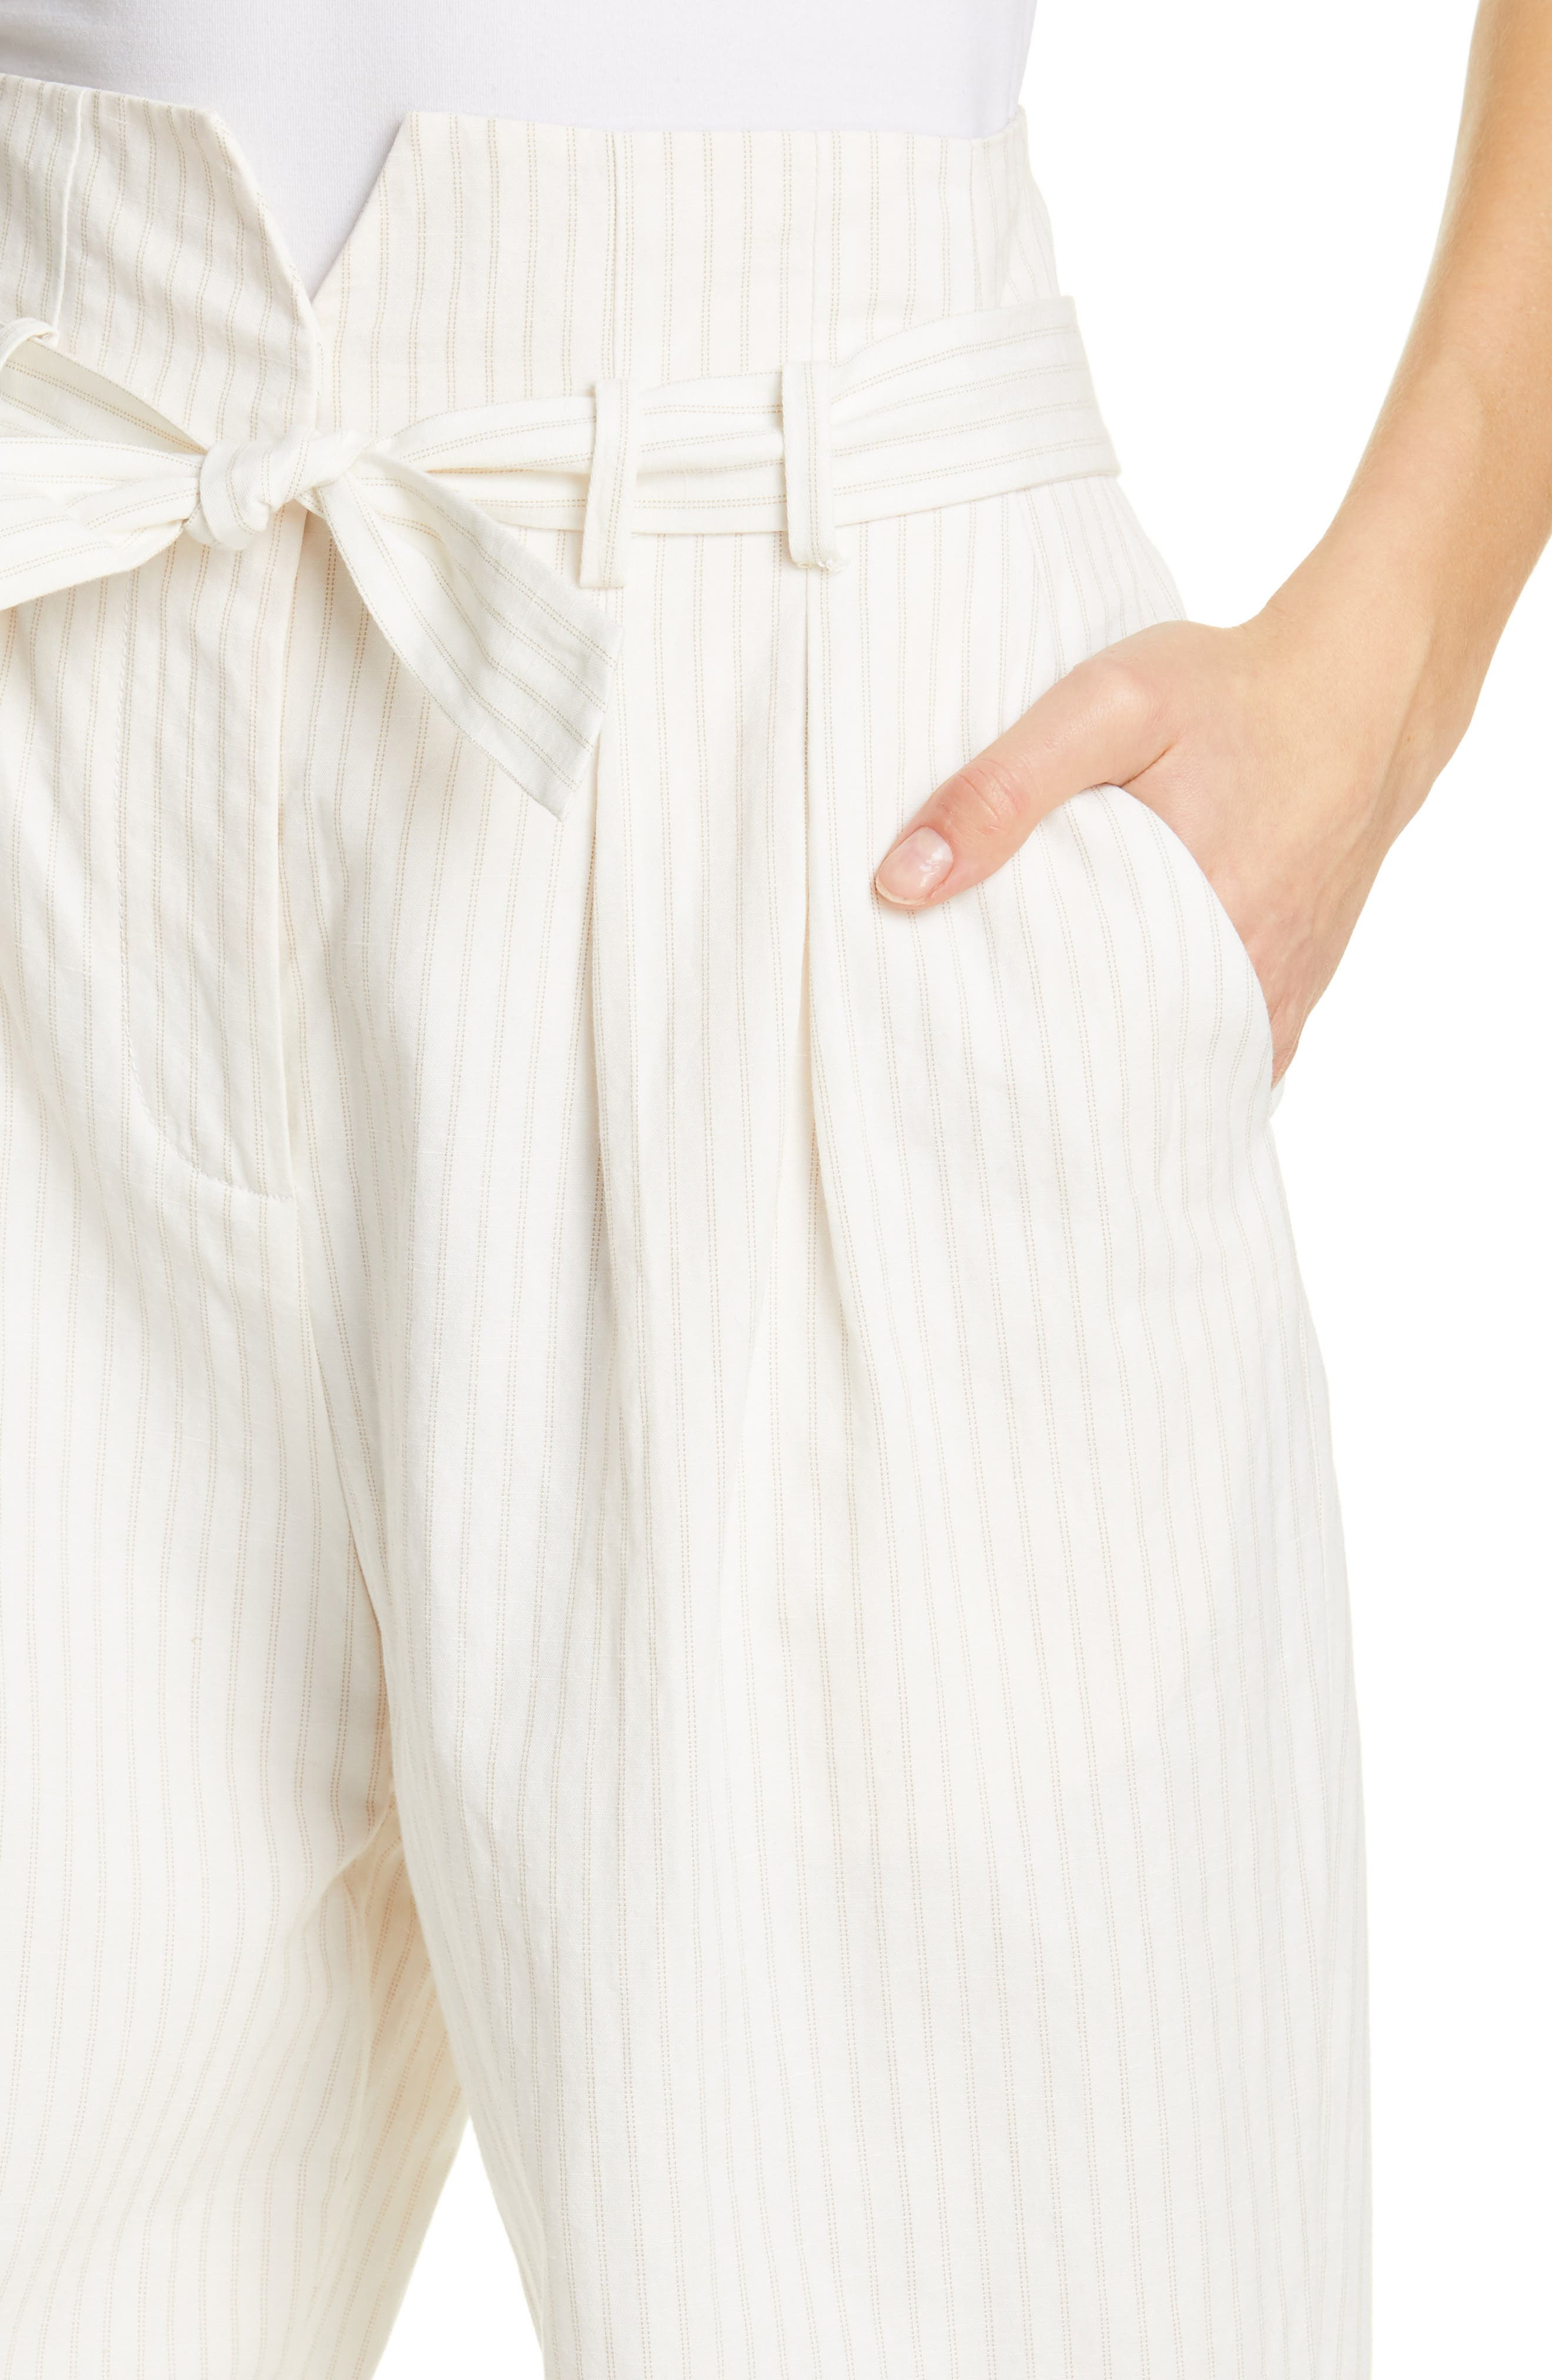 REBECCA TAYLOR, Pinstripe Belted Wide Leg Pants, Alternate thumbnail 5, color, SNOW COMBO